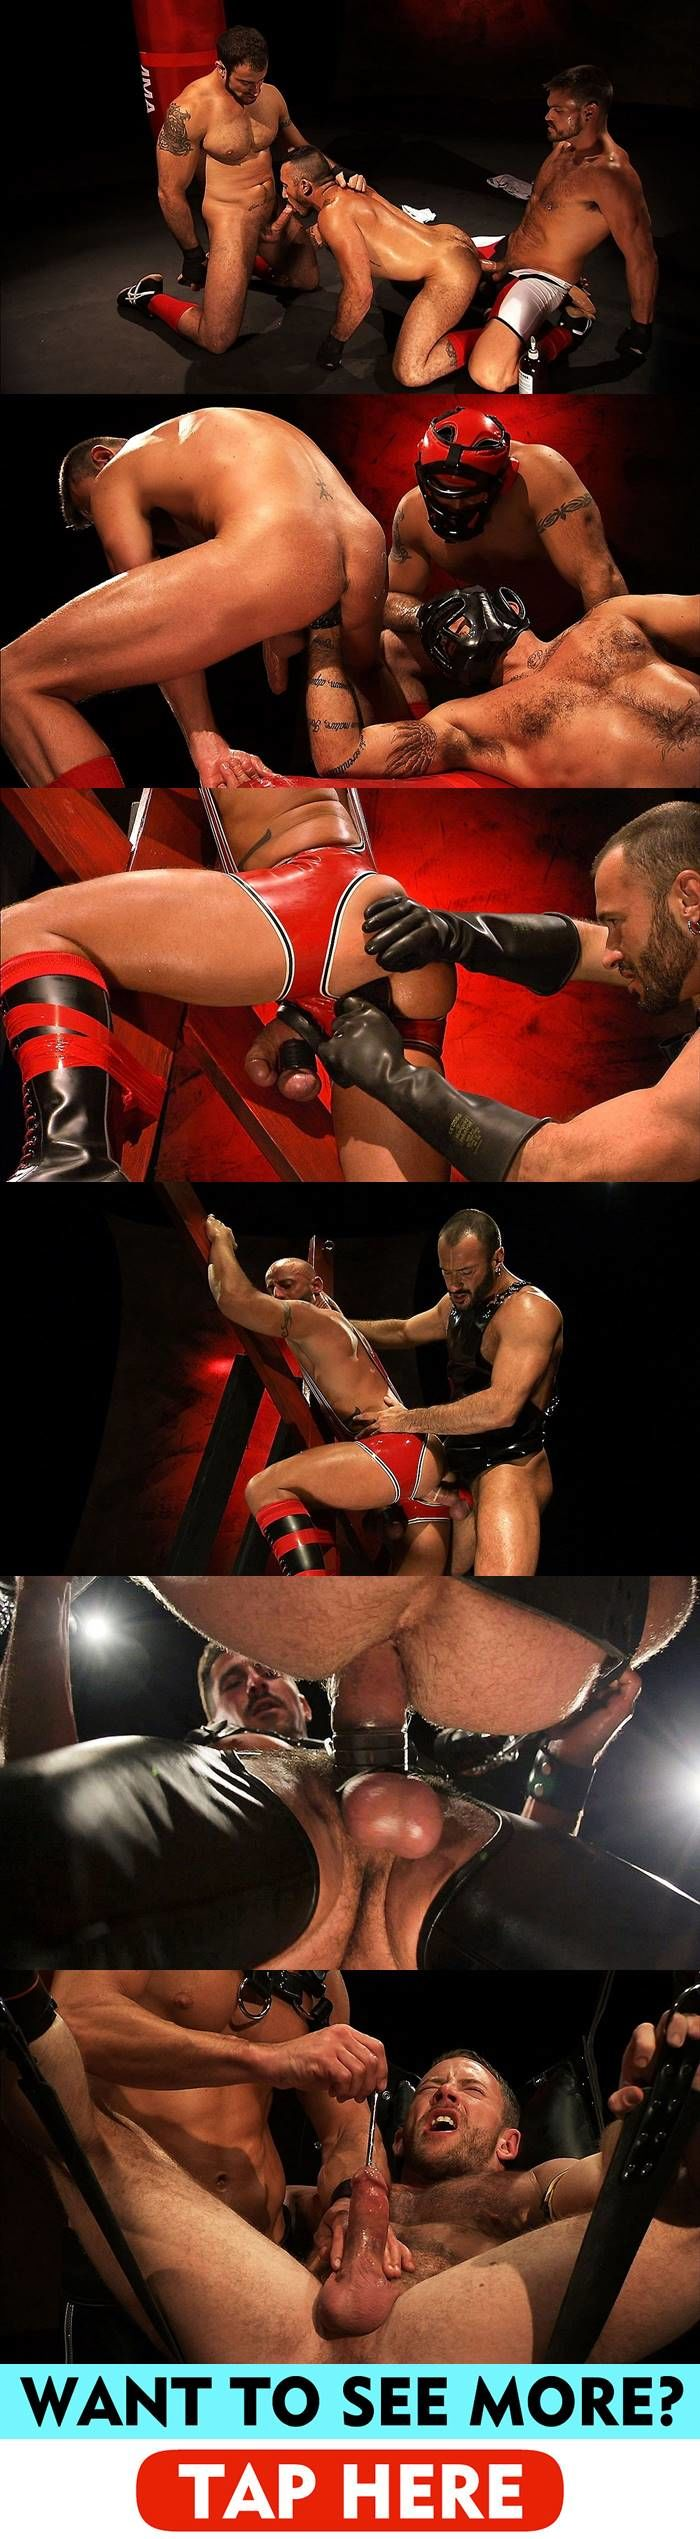 TitanMen Presents: Full Fetish